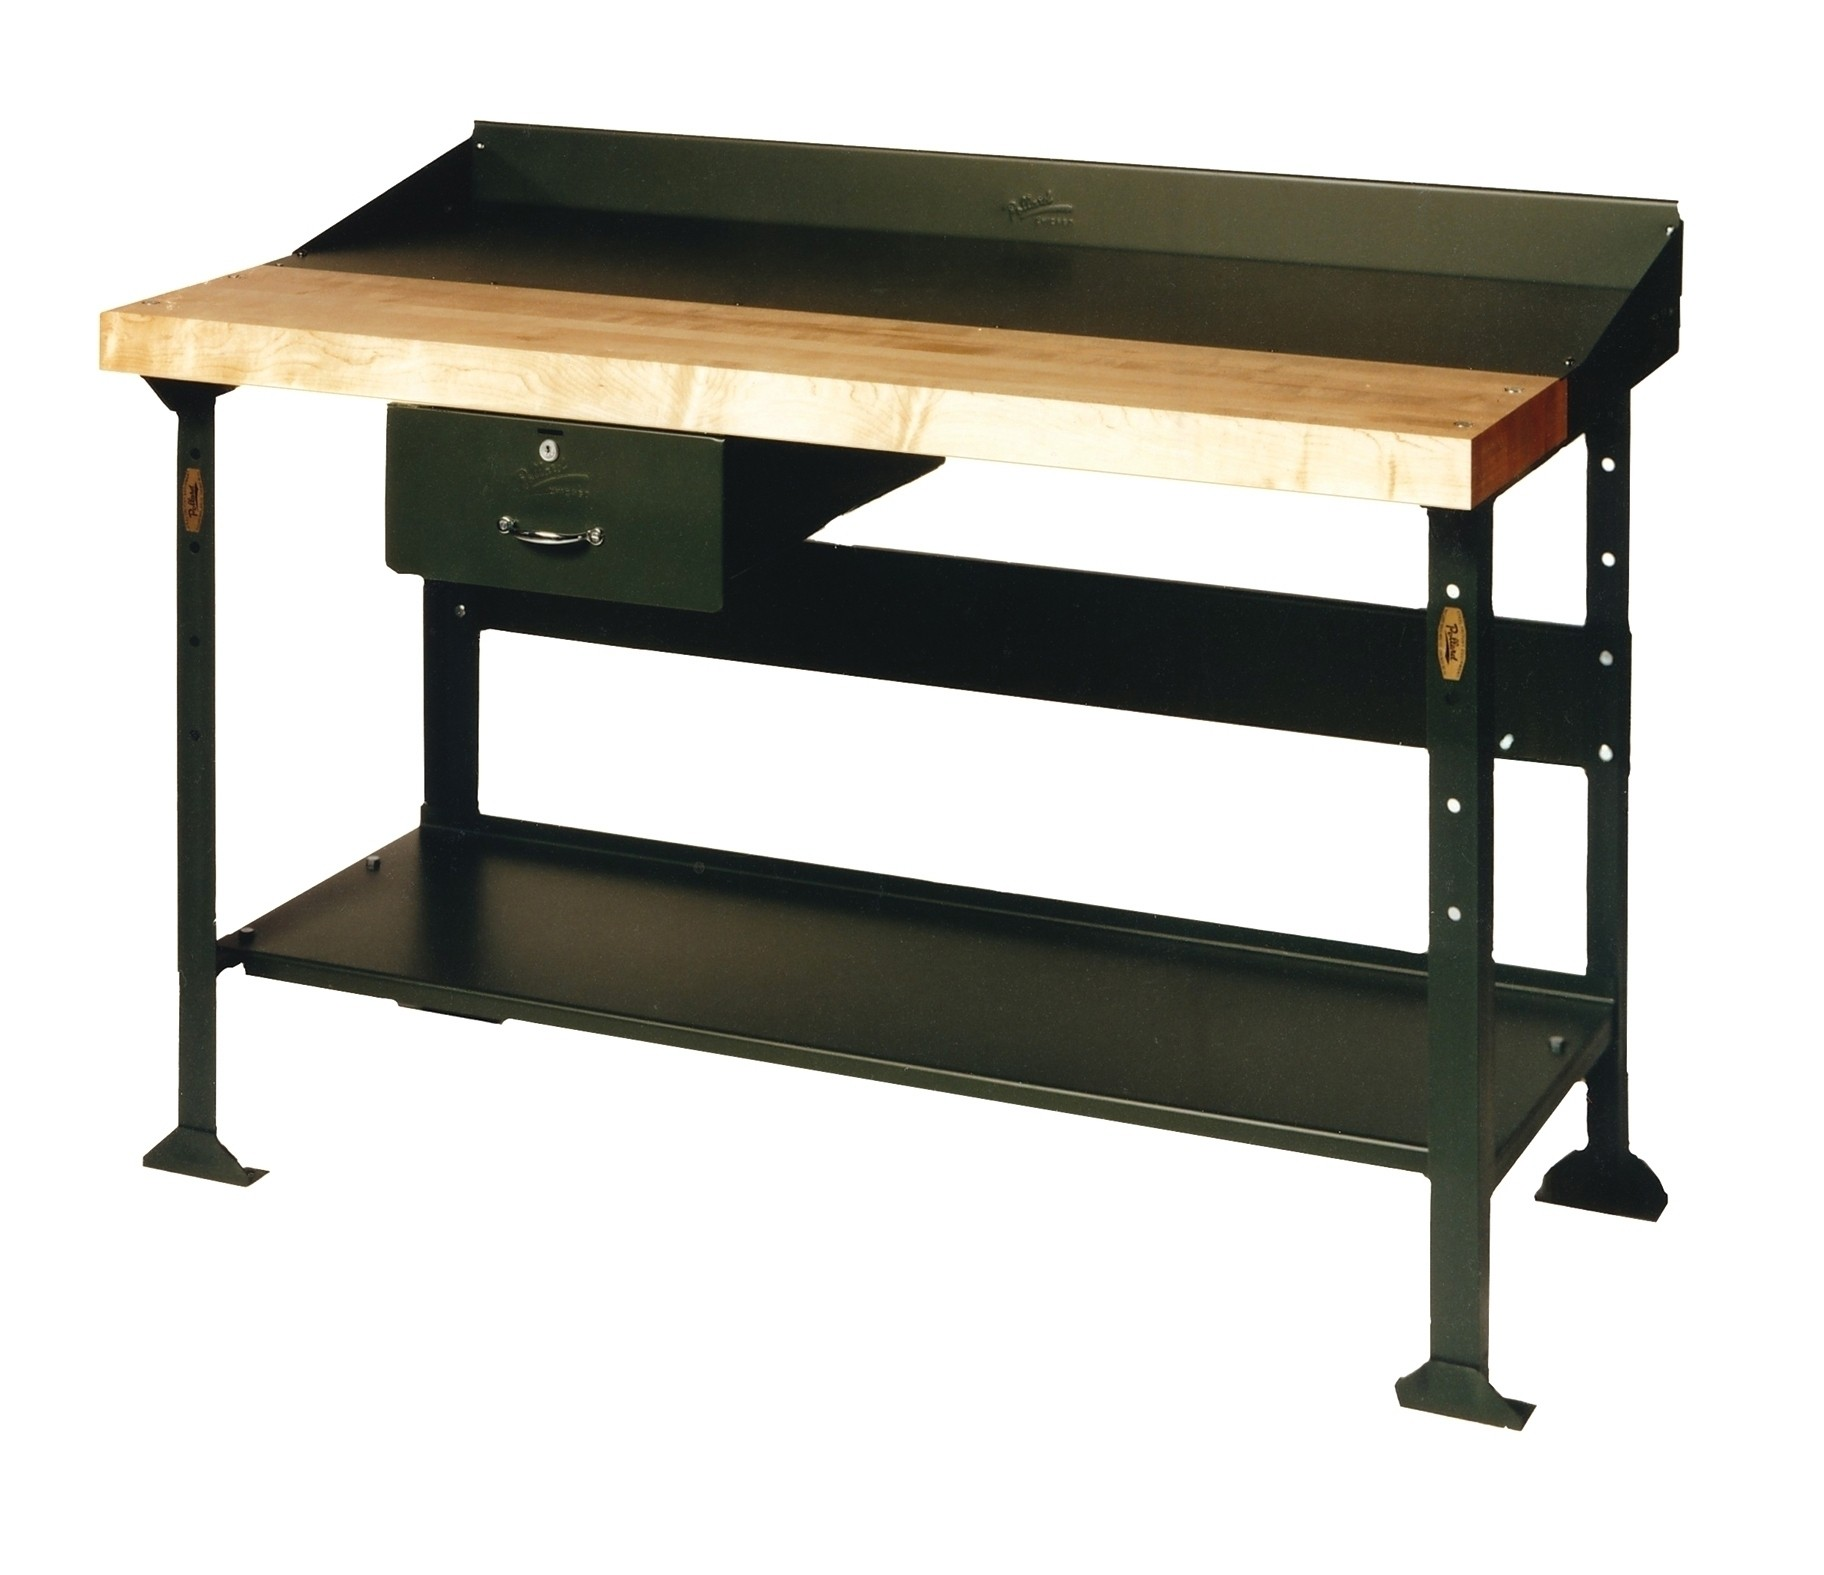 Surprising Steel Wood Work Bench Top Size L X D 60 X 30 Gray Bralicious Painted Fabric Chair Ideas Braliciousco